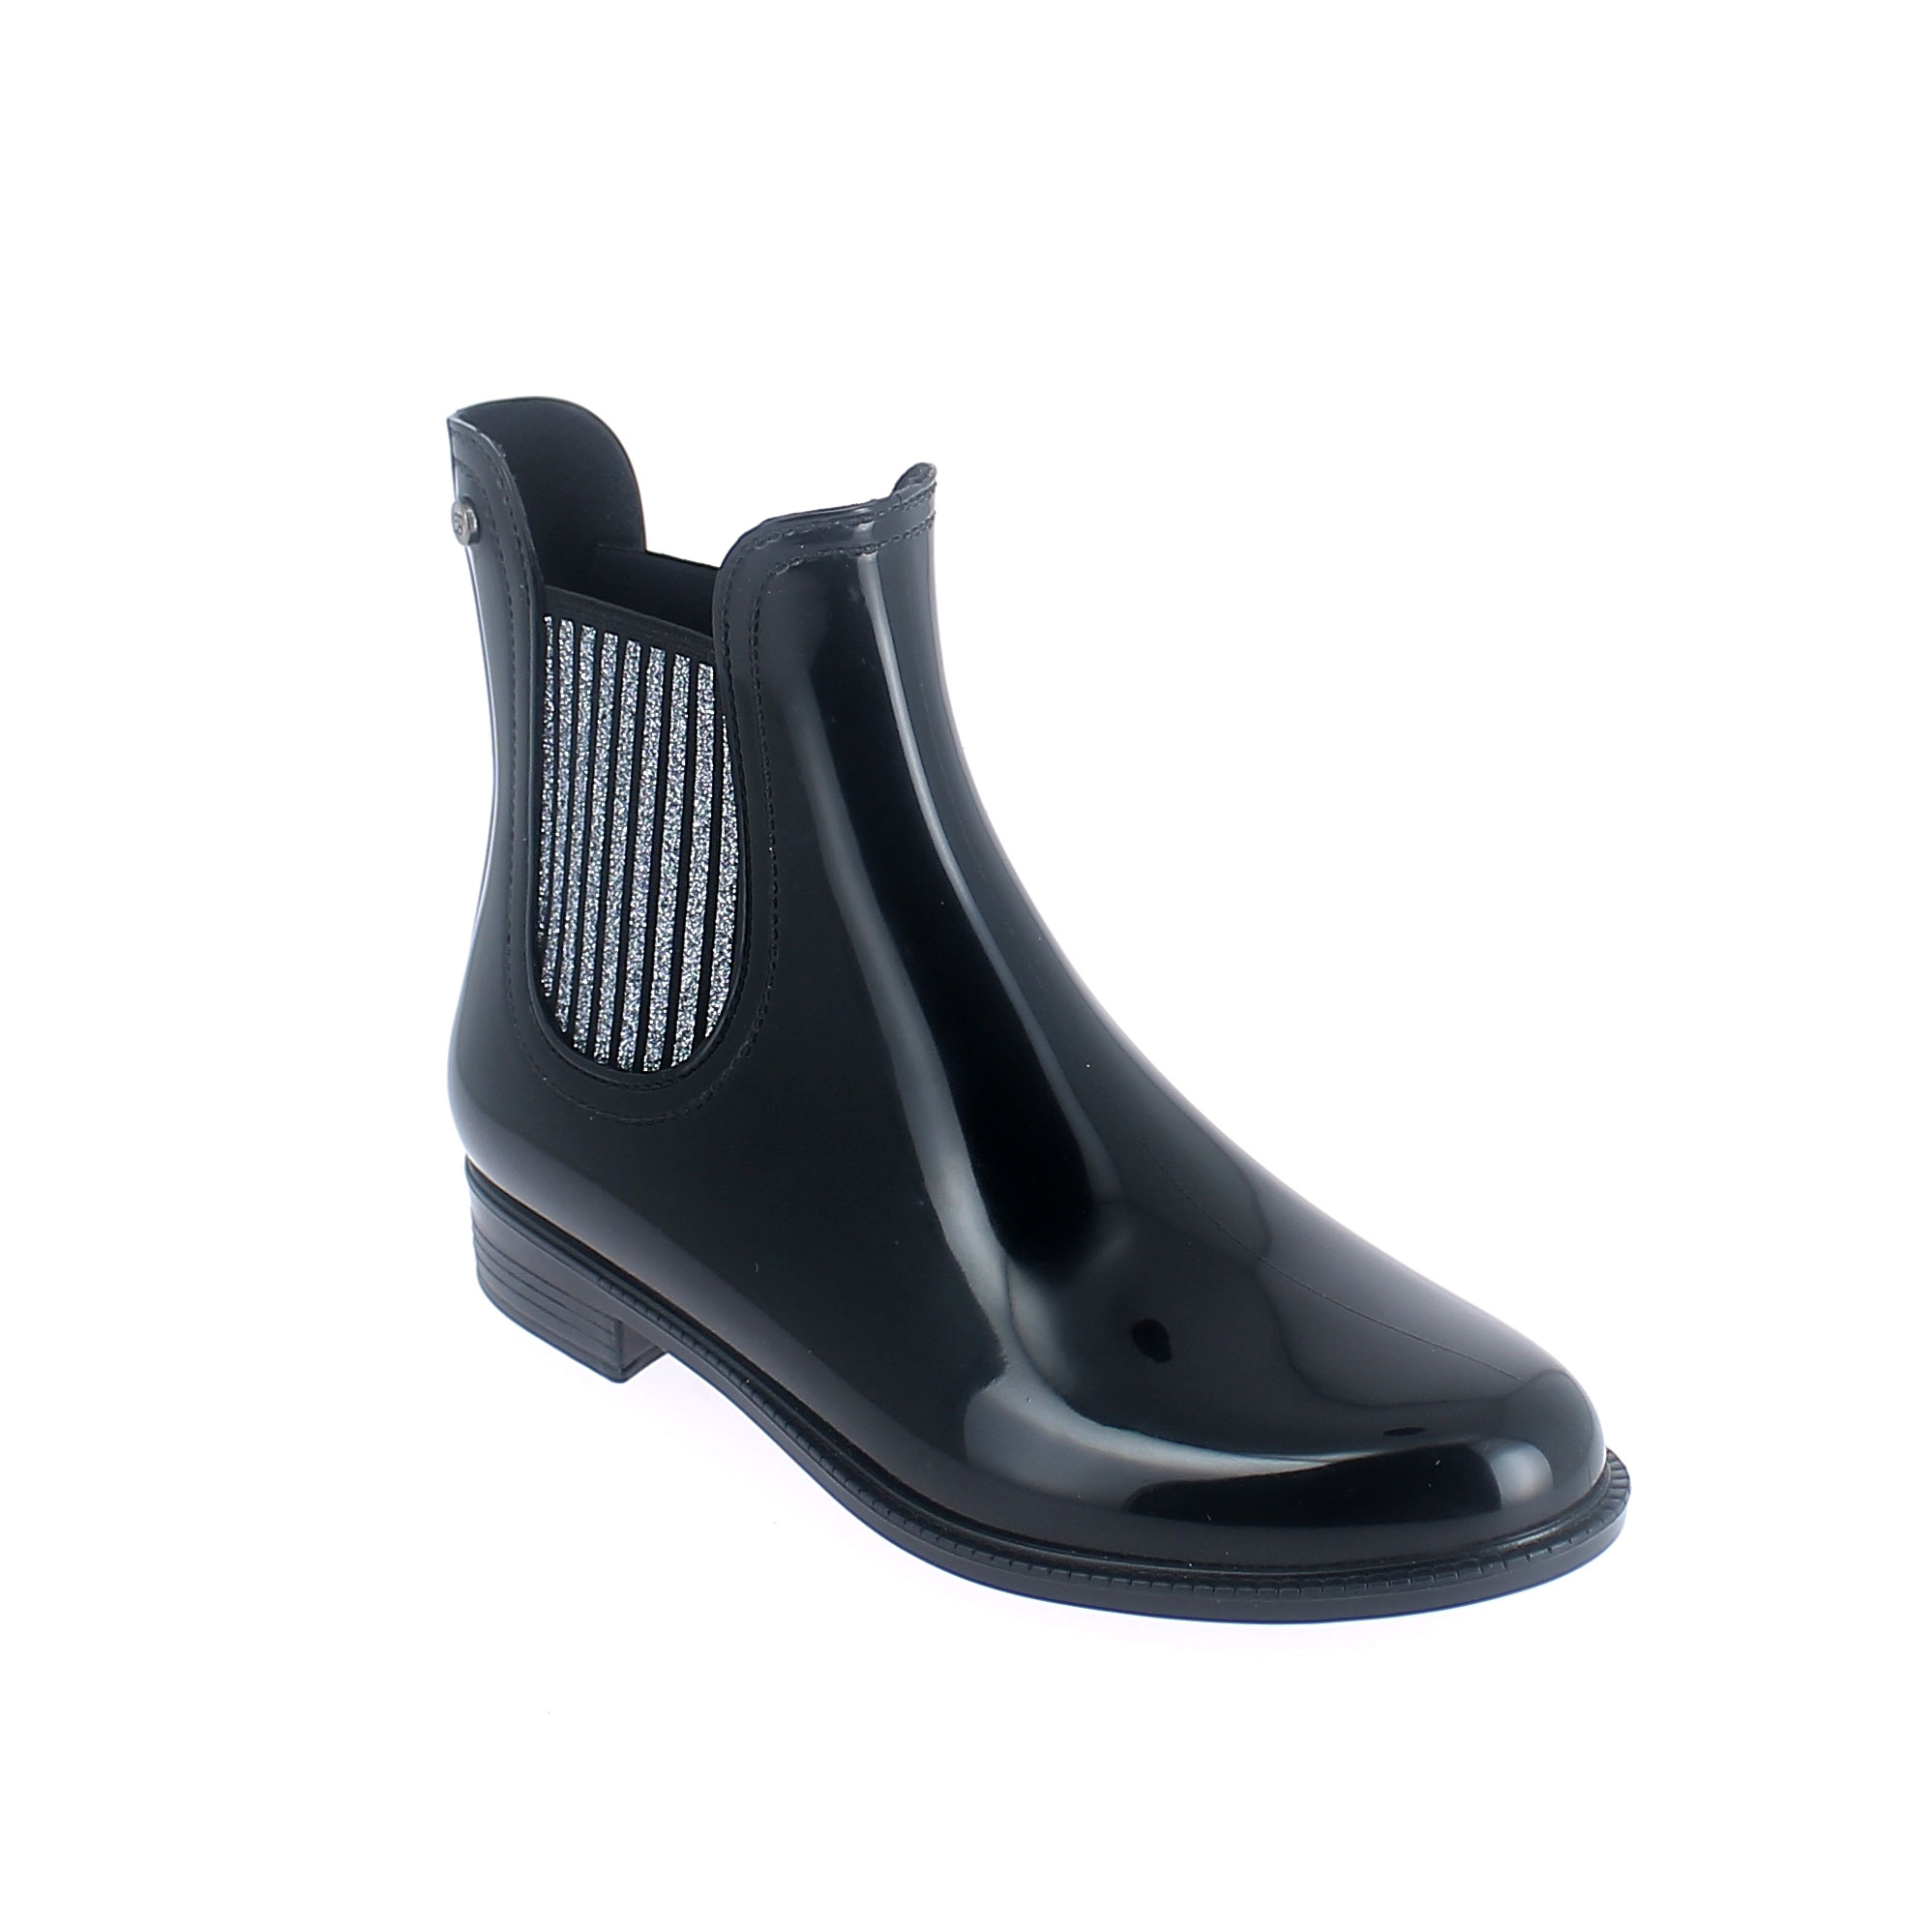 Chelsea boot in Black pvc with glittered elastics